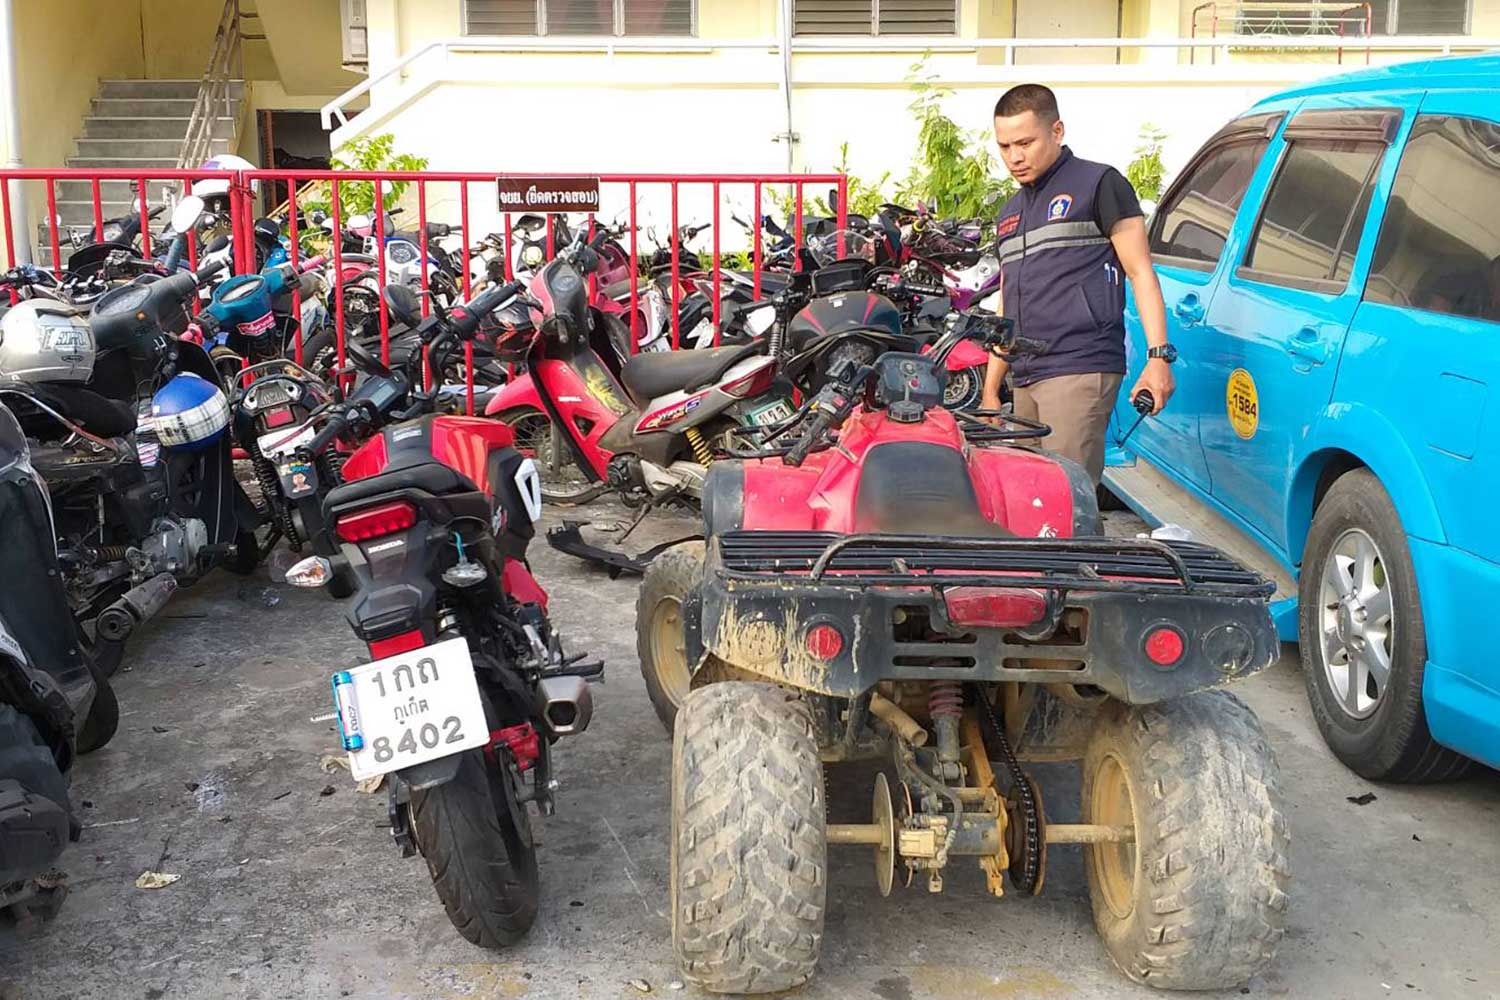 A police officer examines the red all-terrain vehicle (ATV) involved in a crash with a motorcycle that caused the death of an elderly Frenchman in Muang district, Phuket. (Photo by Achadtaya Chuenniran)